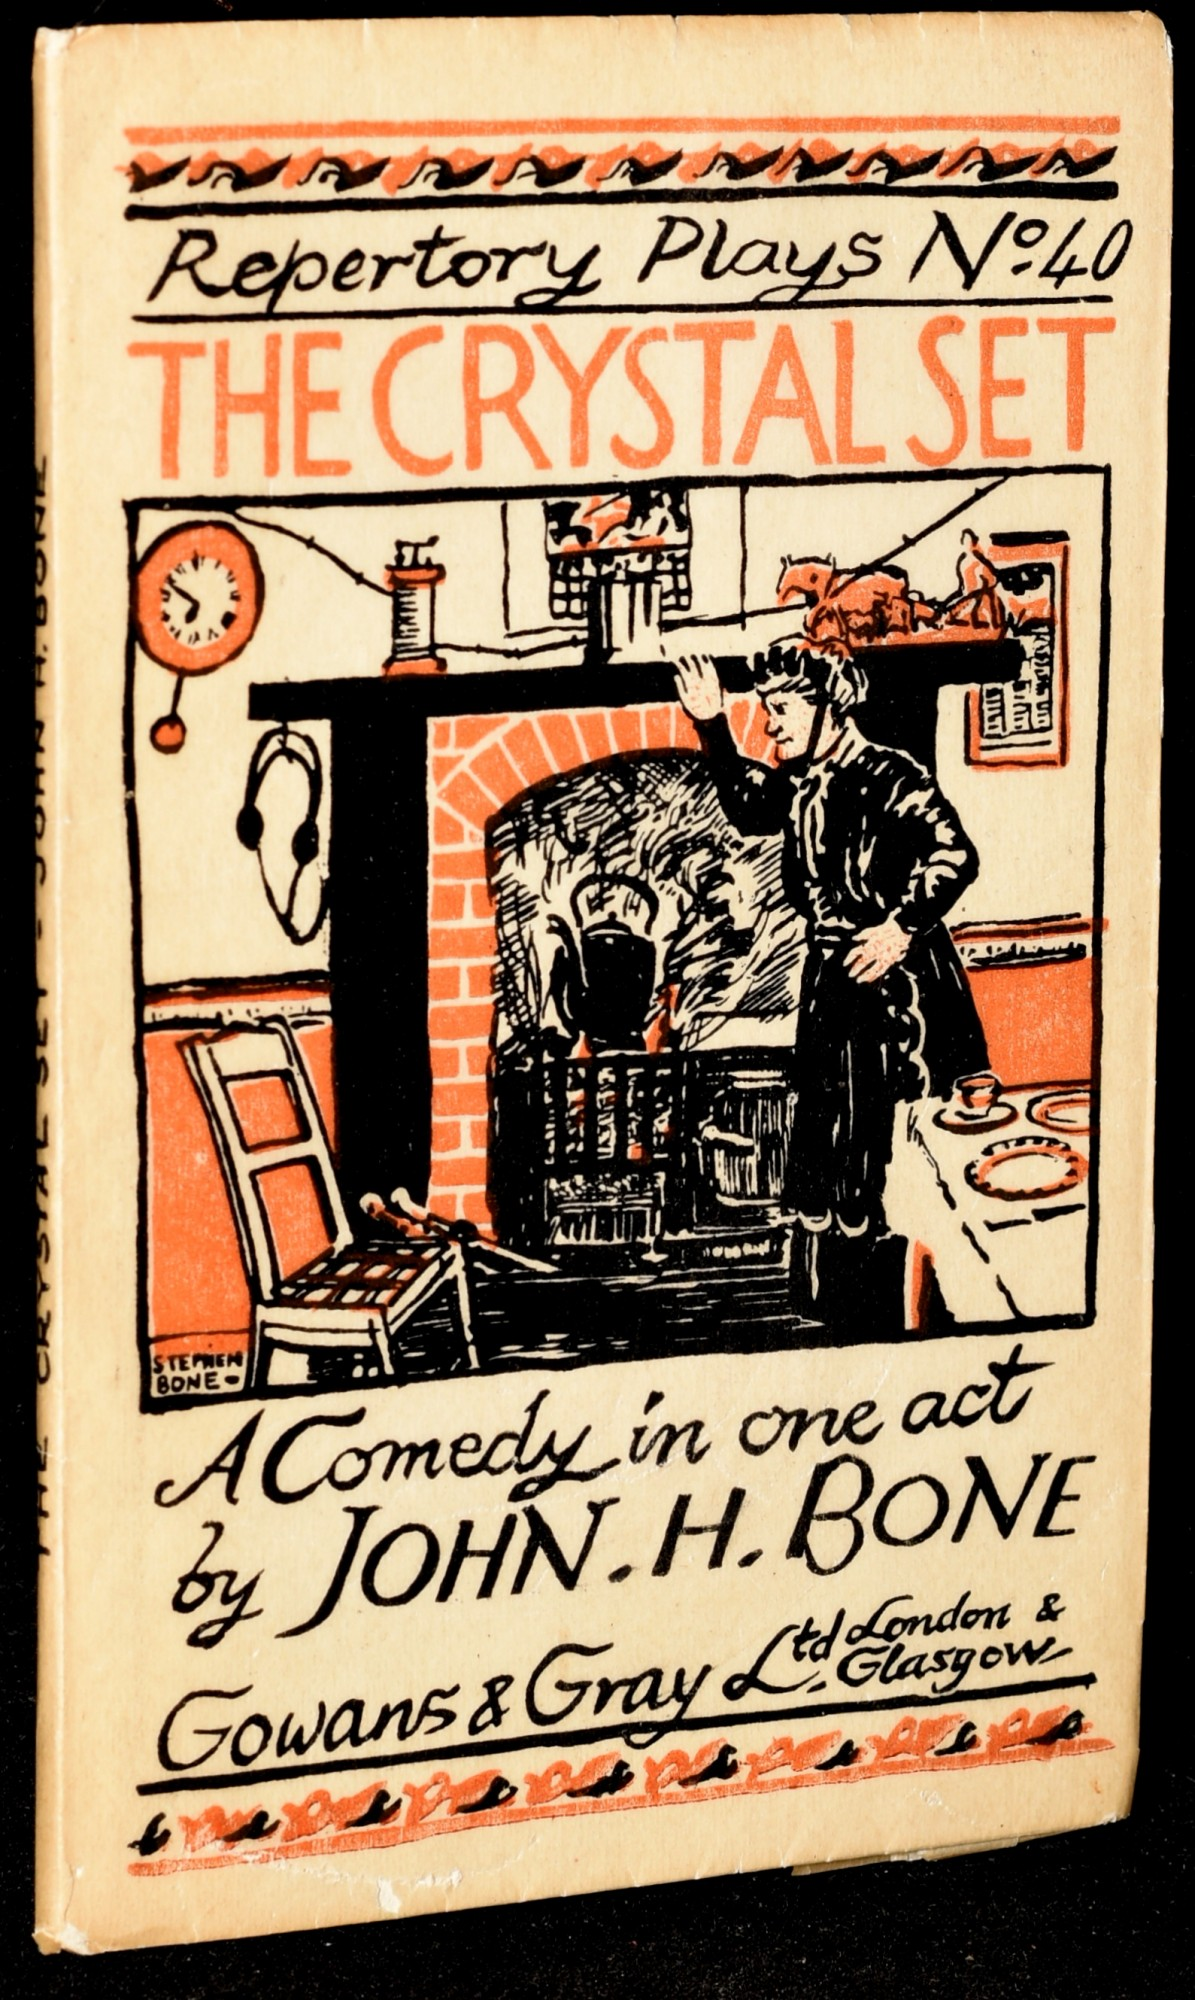 THE CRYSTAL SET: A Comedy in One Act Repertory Plays No  40 by John H  Bone  on Black Swan Books